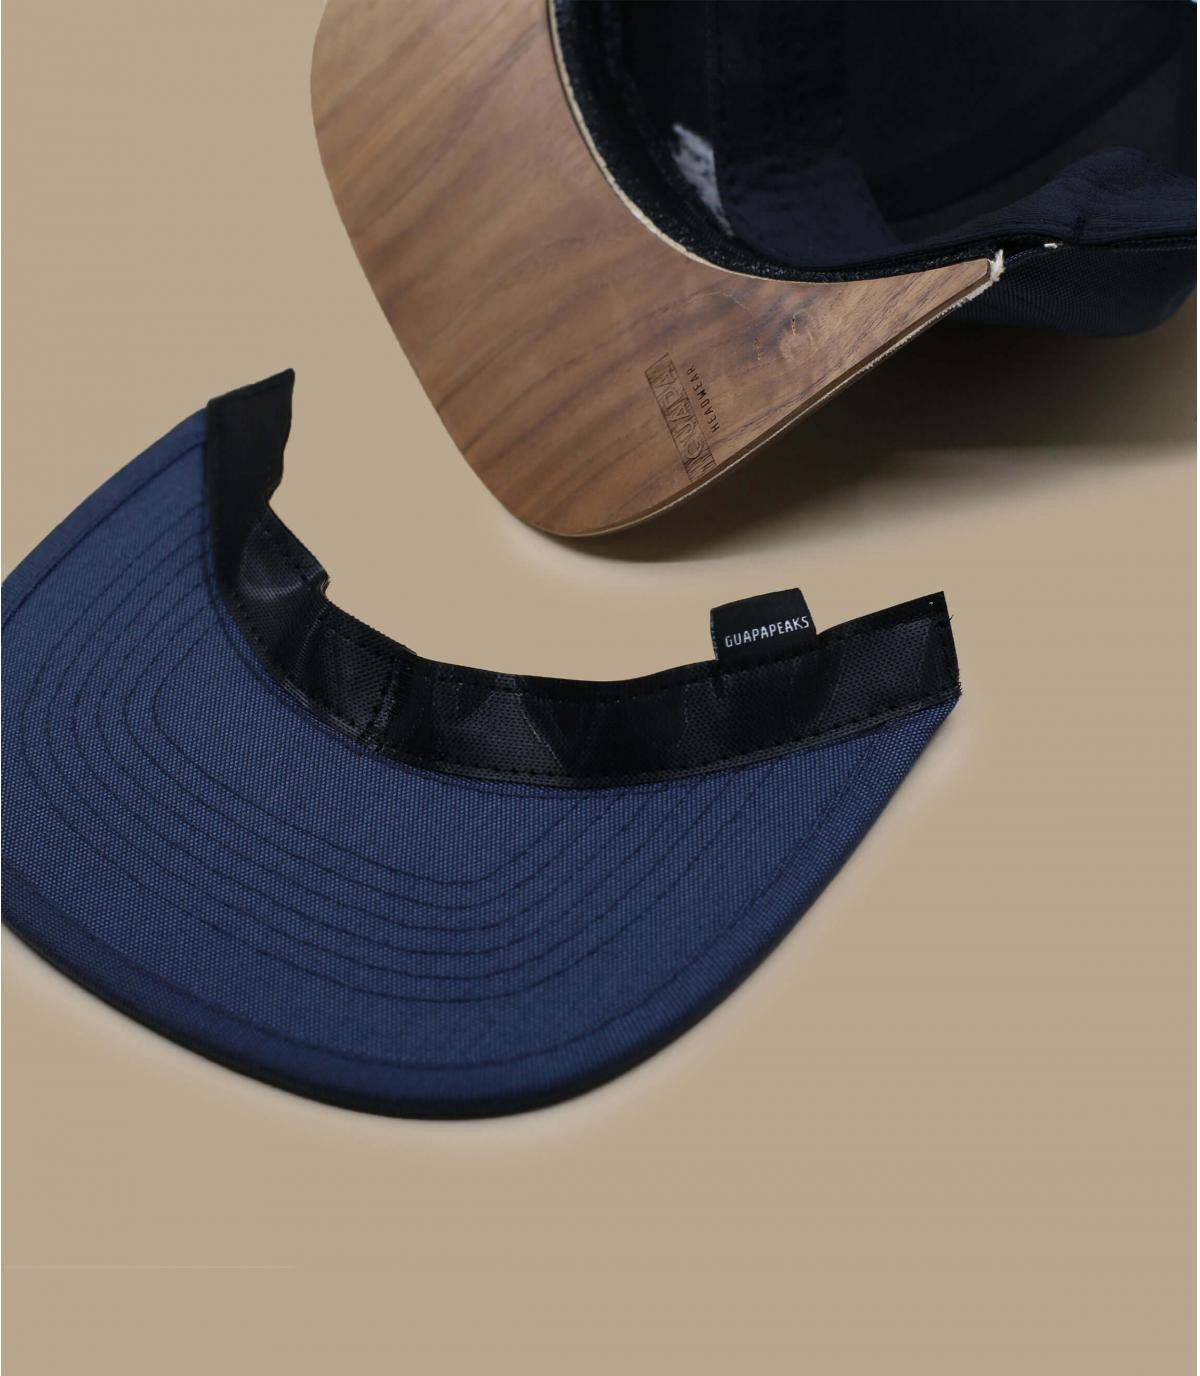 Details Snapback Recycled navy - Abbildung 5